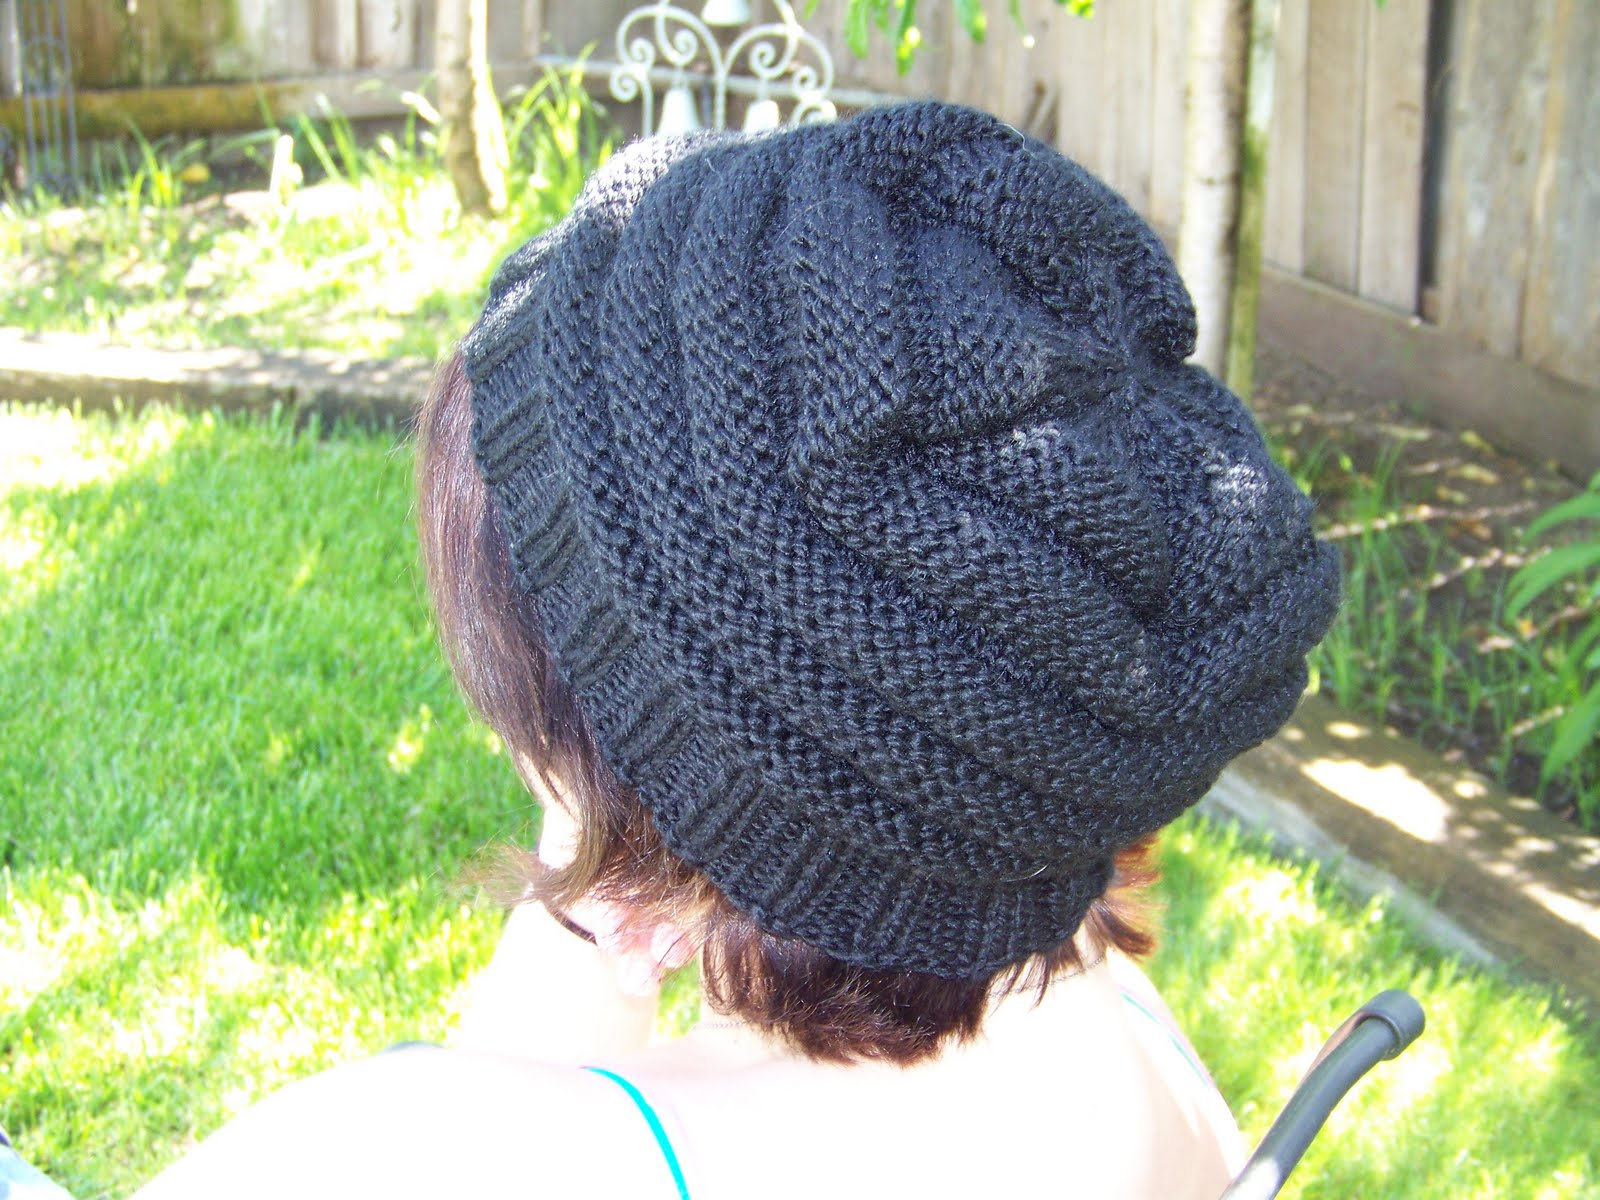 Knitting Terms Pm : On stefanie s crafty side ariel beehive hat